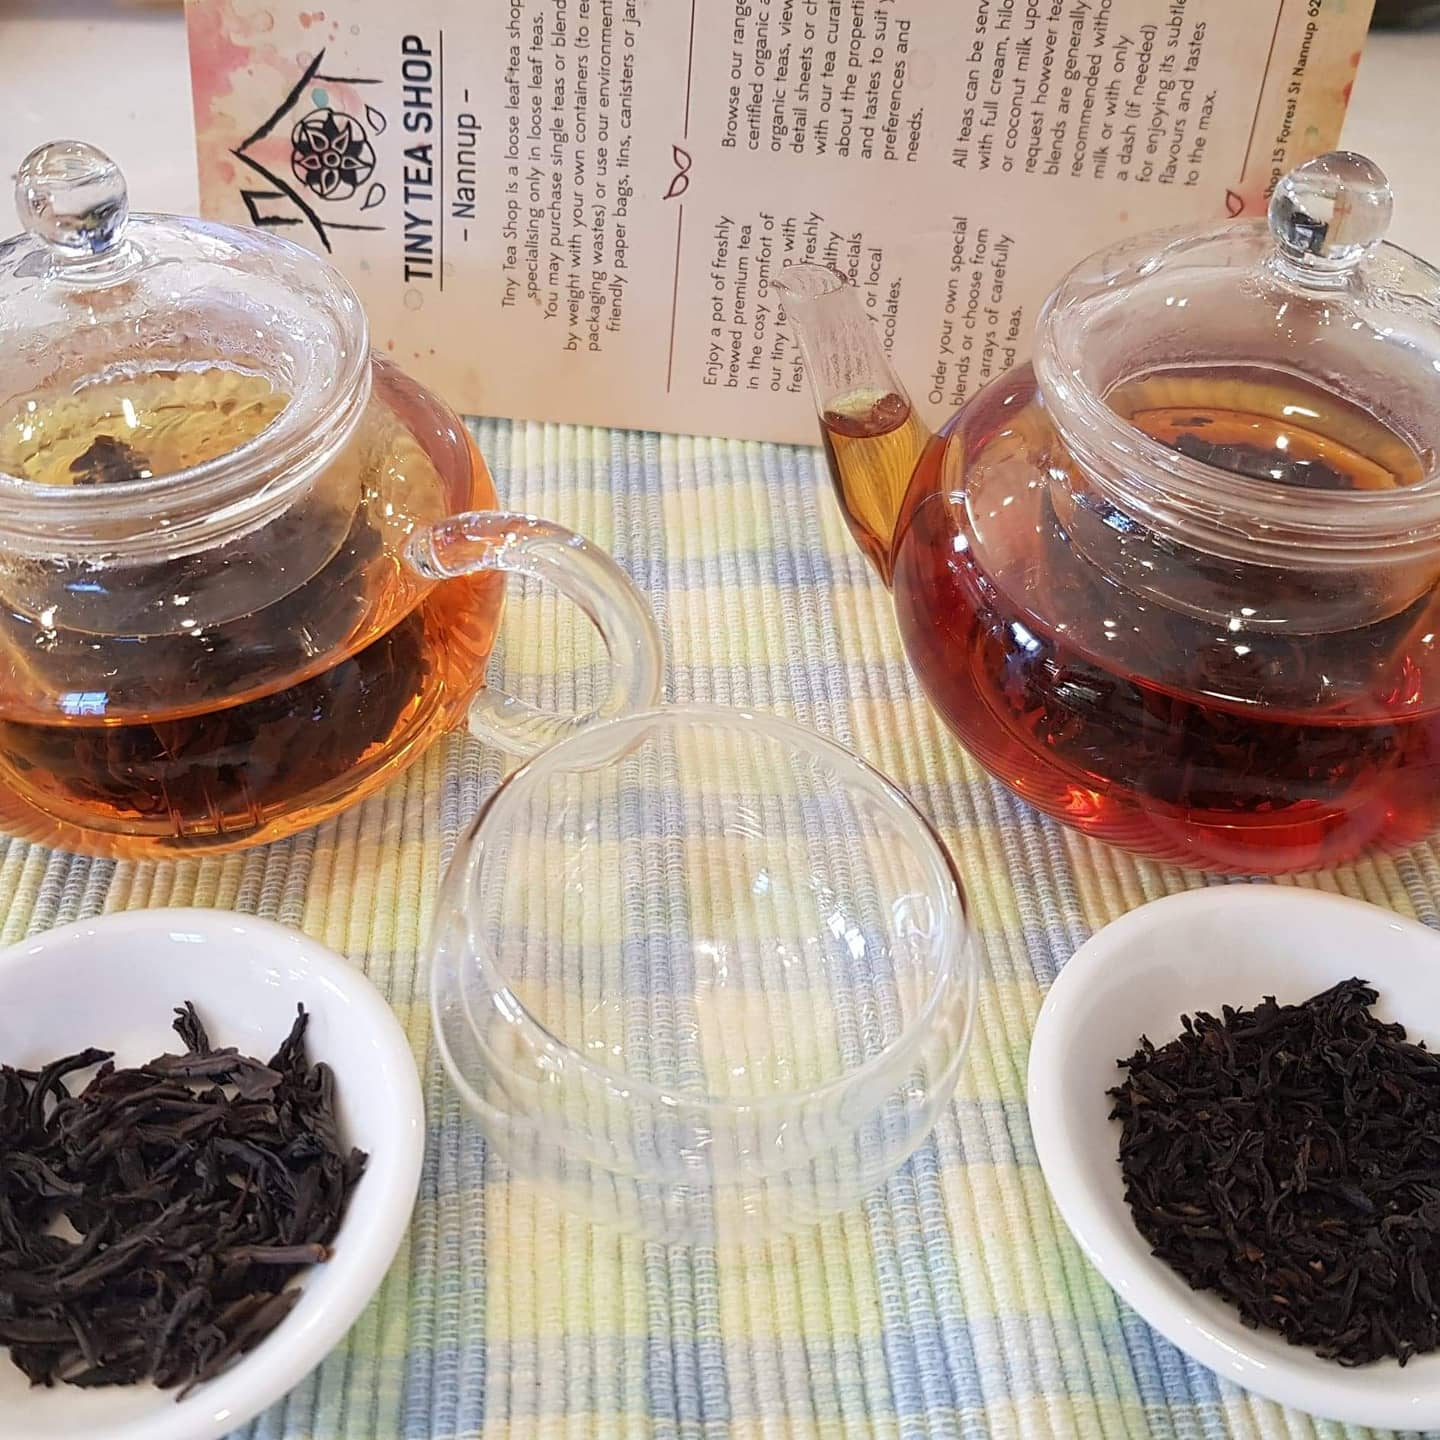 Are you a Black Tea lover?